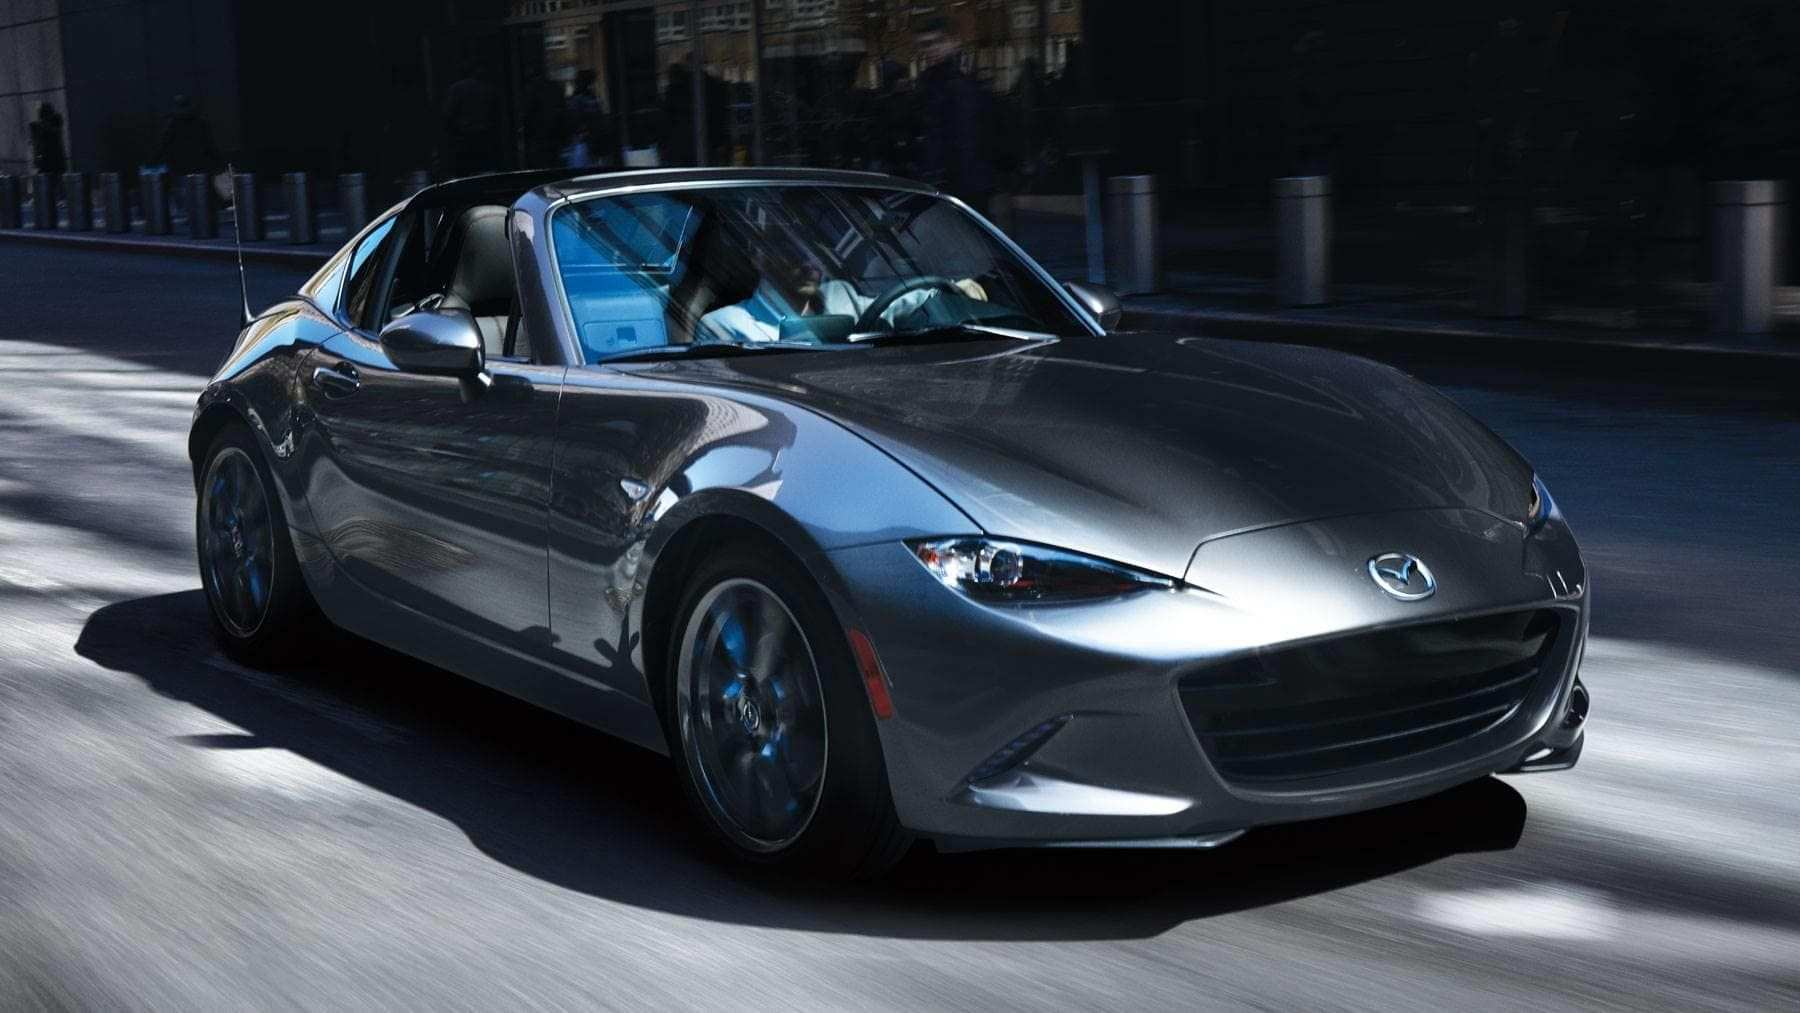 88 The New Mazda Kodo 2019 Release Date Style with New Mazda Kodo 2019 Release Date